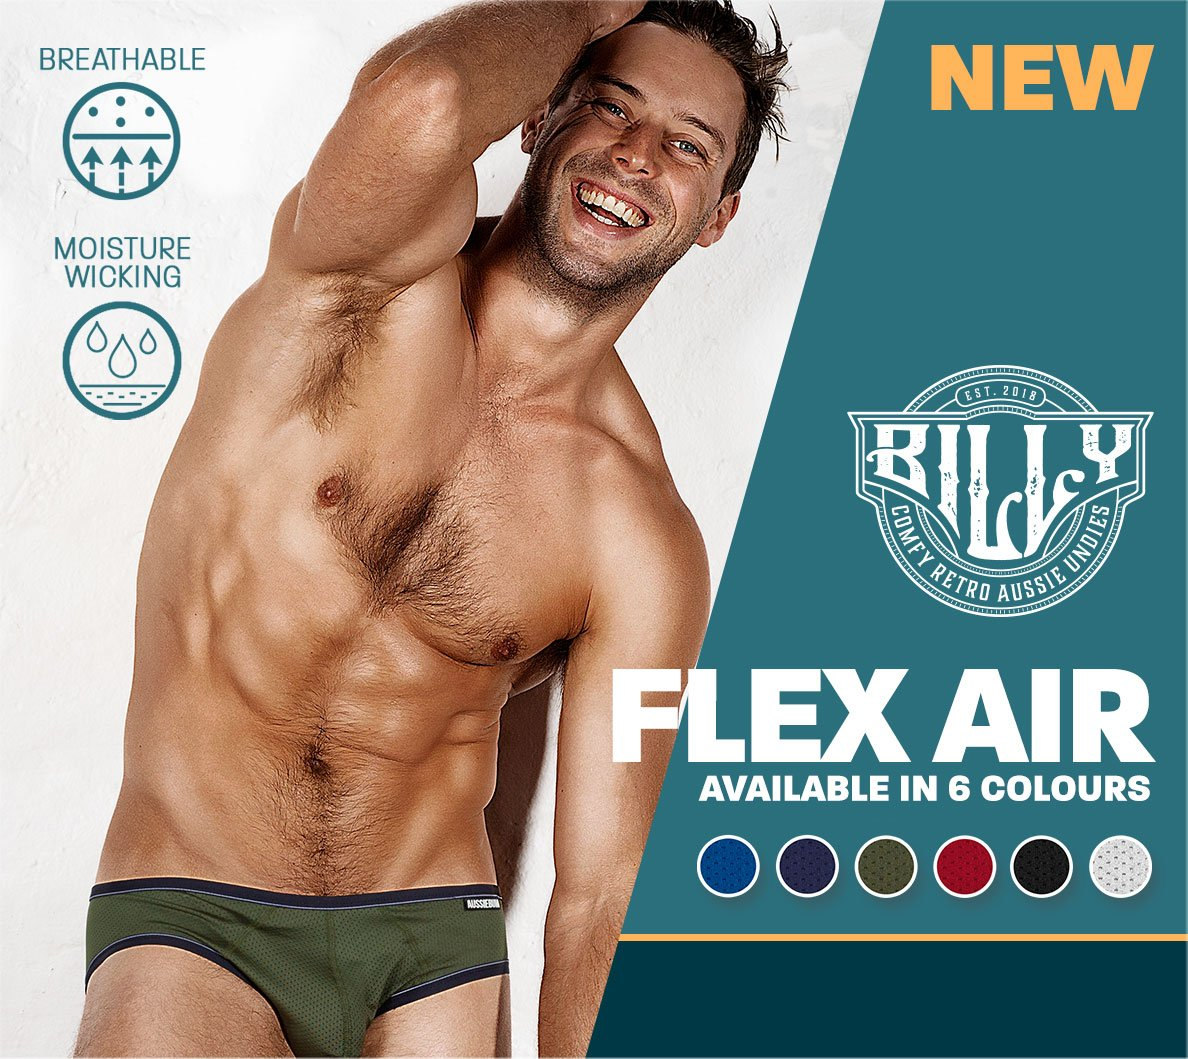 Billy Flex Air Army Homepage Image